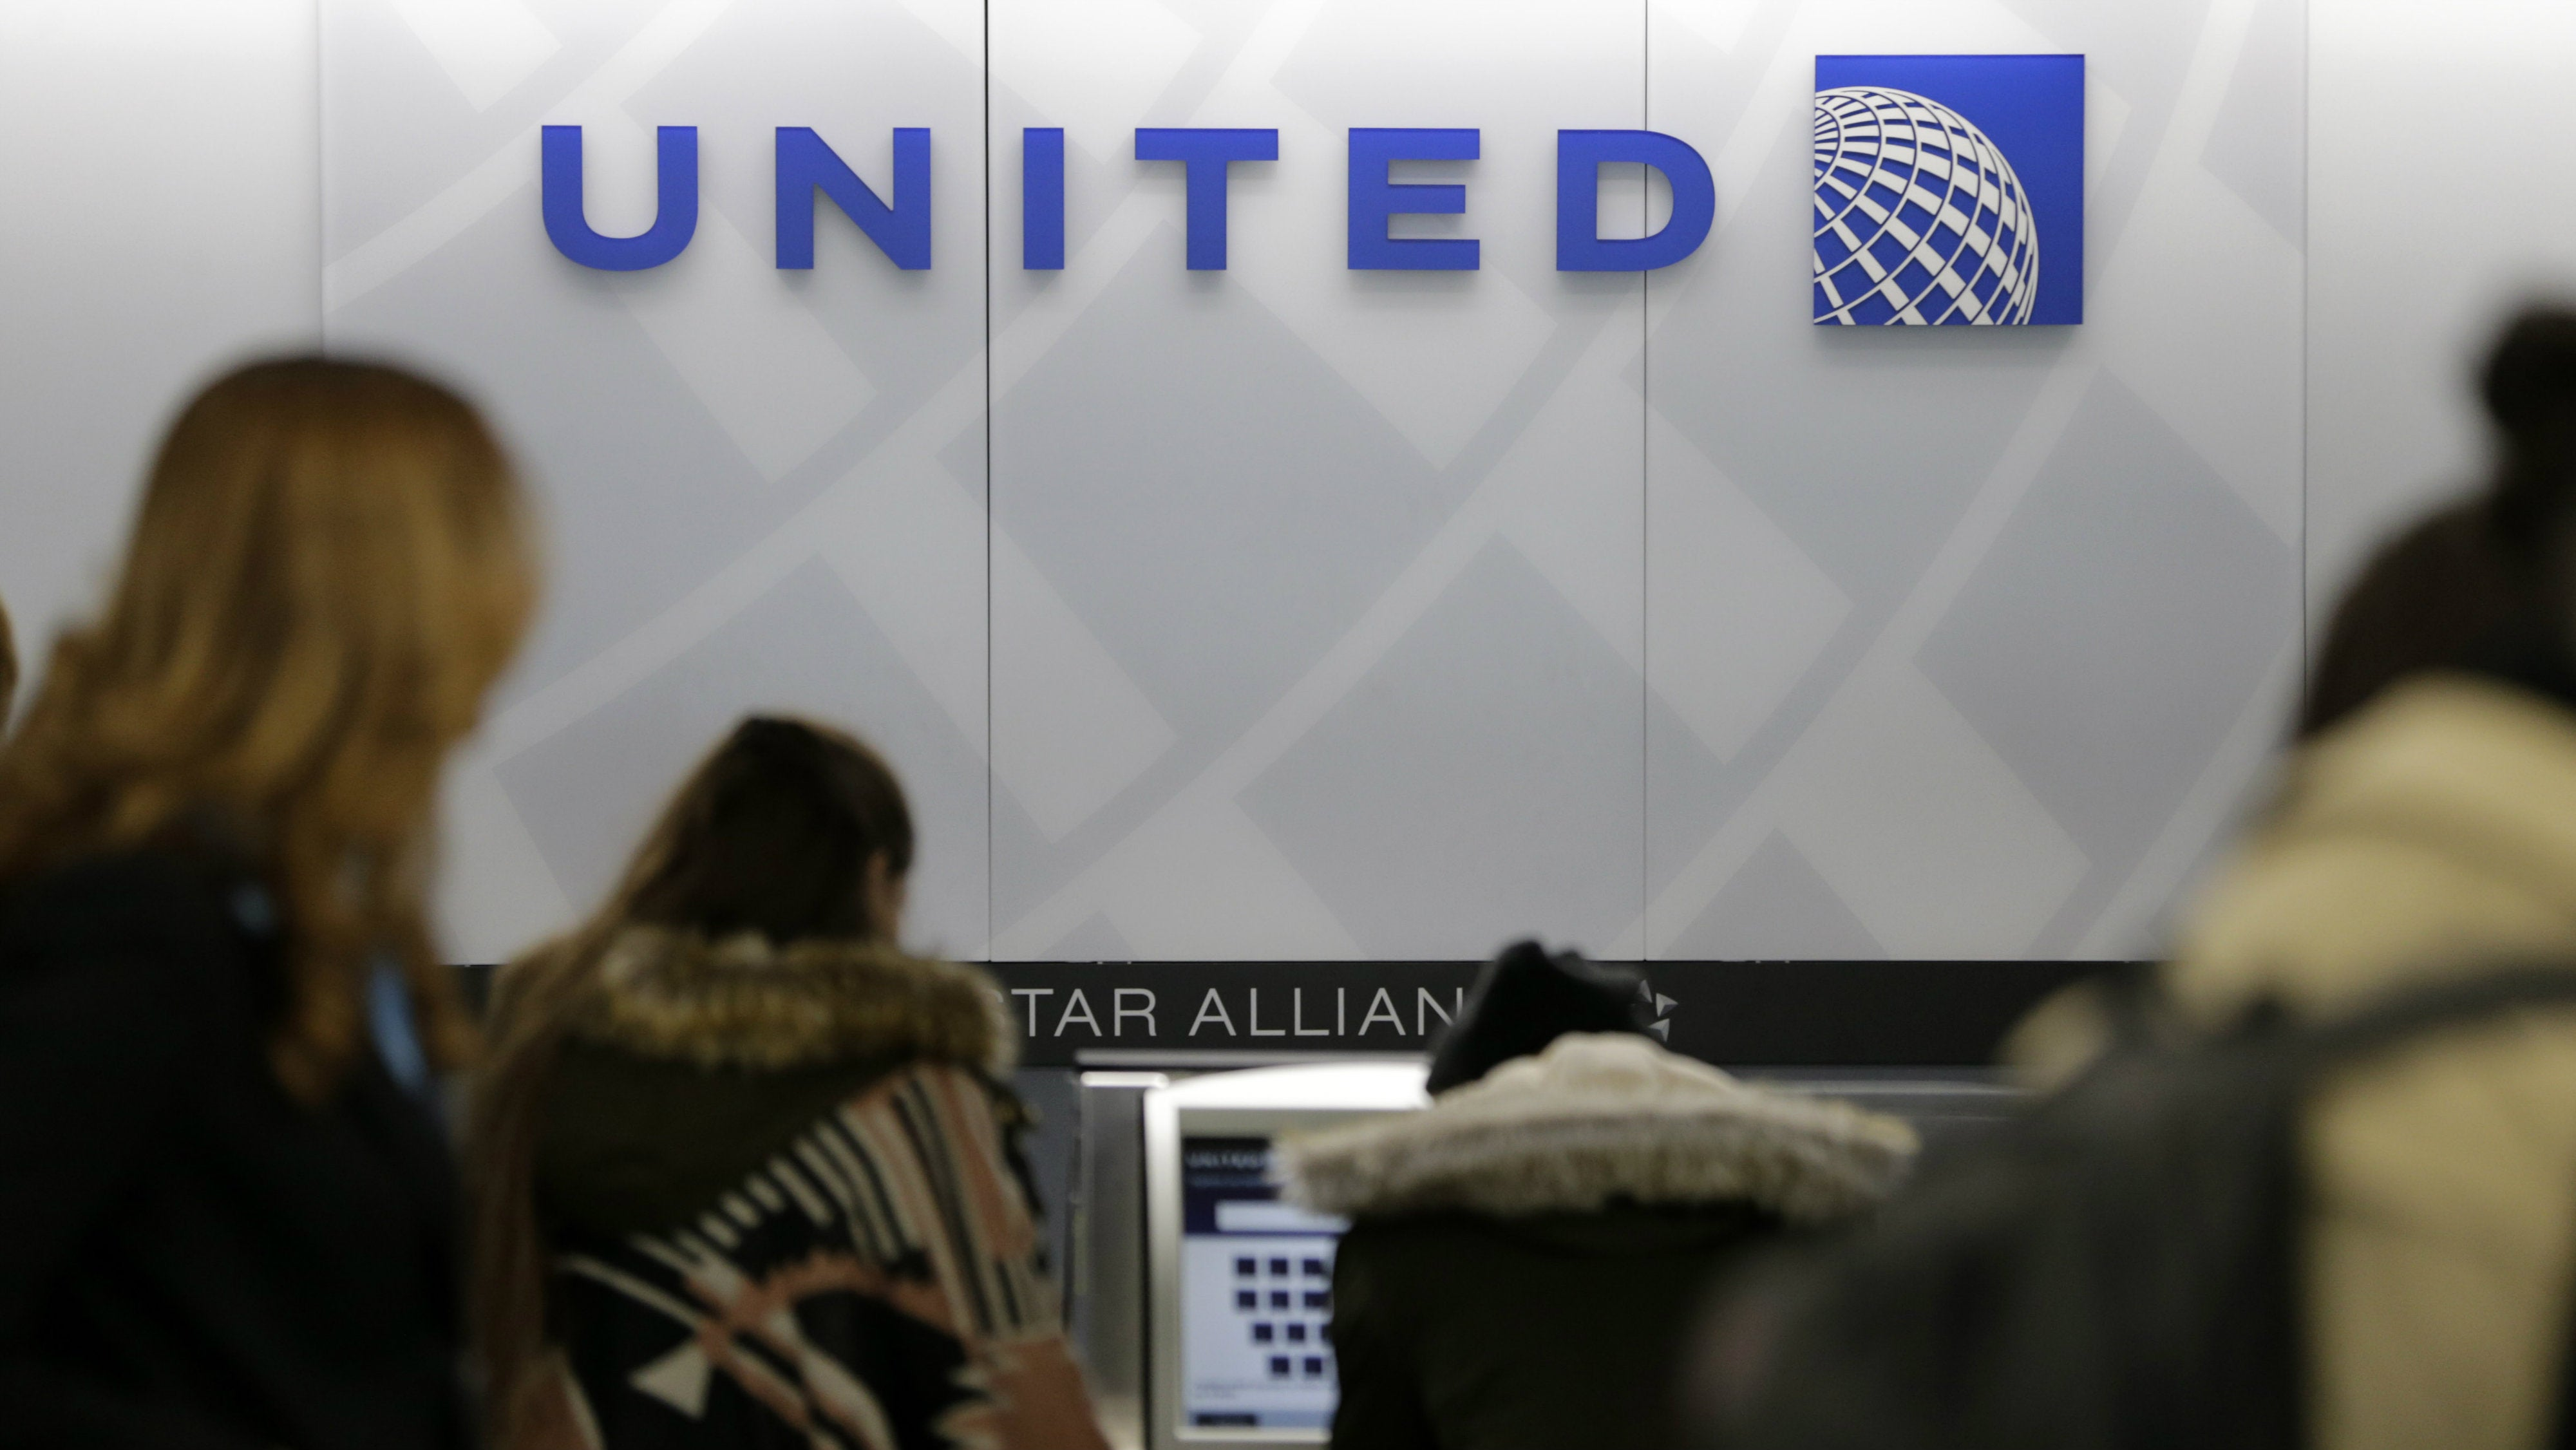 United Loses $1 Billion In Value After Passenger Dragged Off Plane